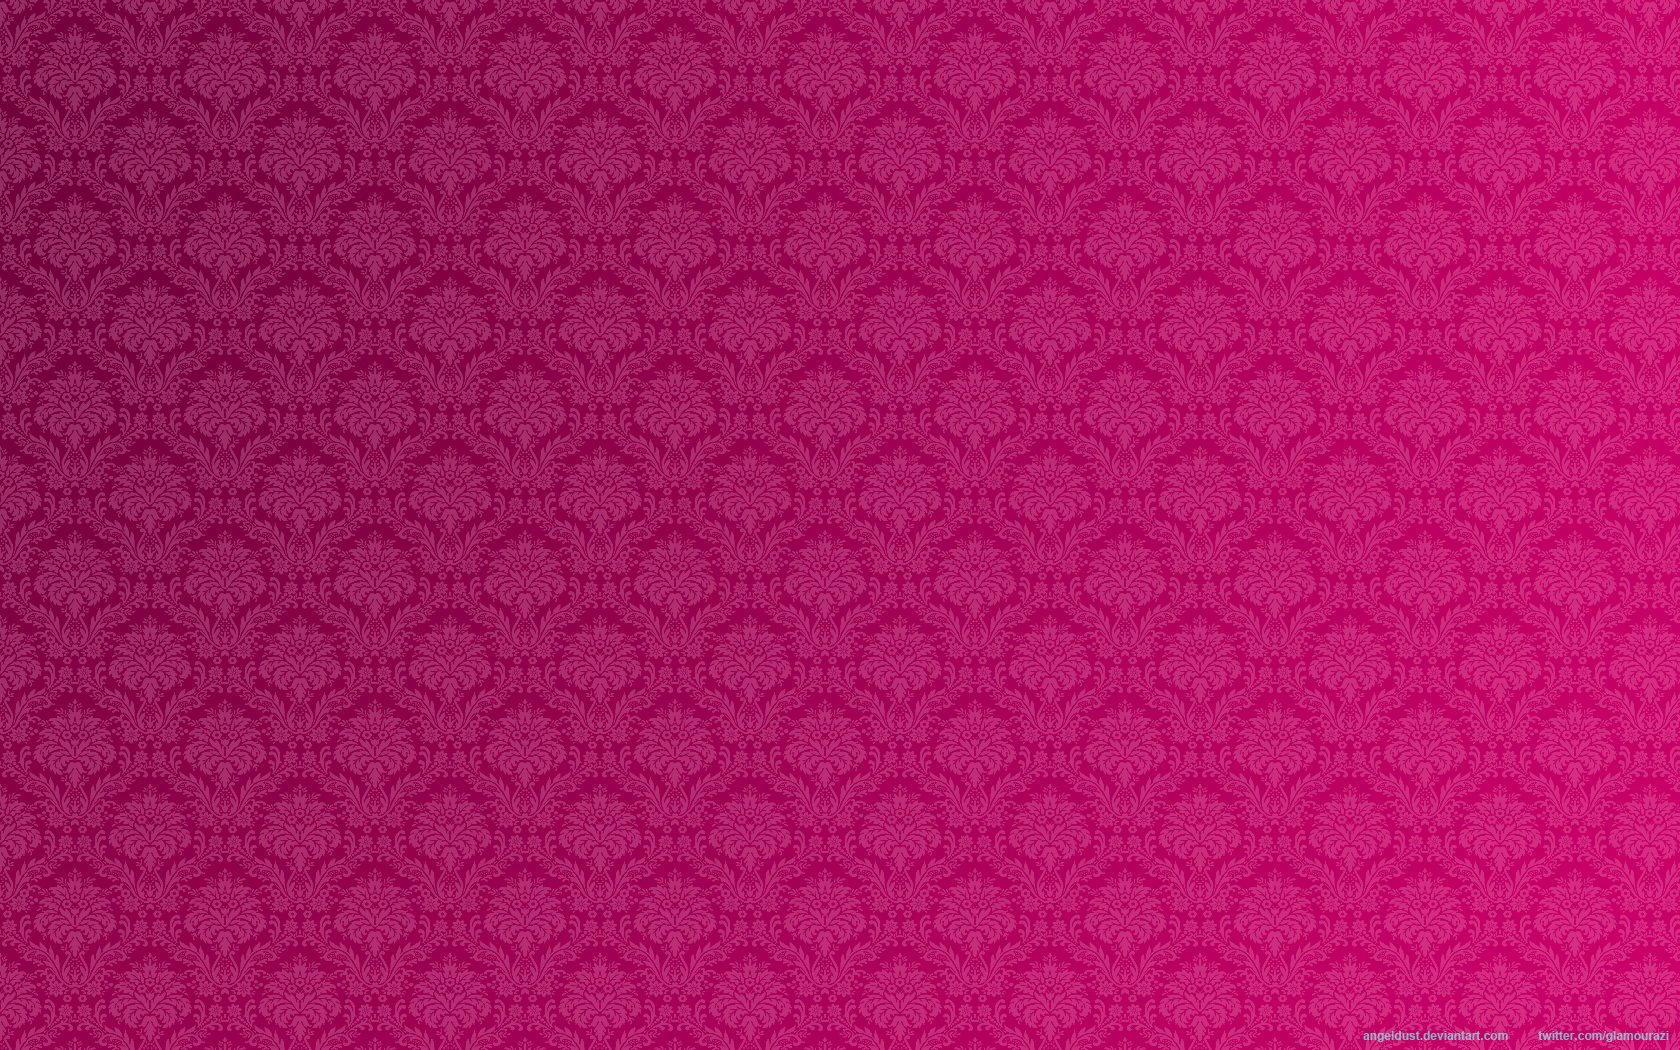 Pink Wallpaper Simple Wonderful Desktop Computer 121 Backgrounds